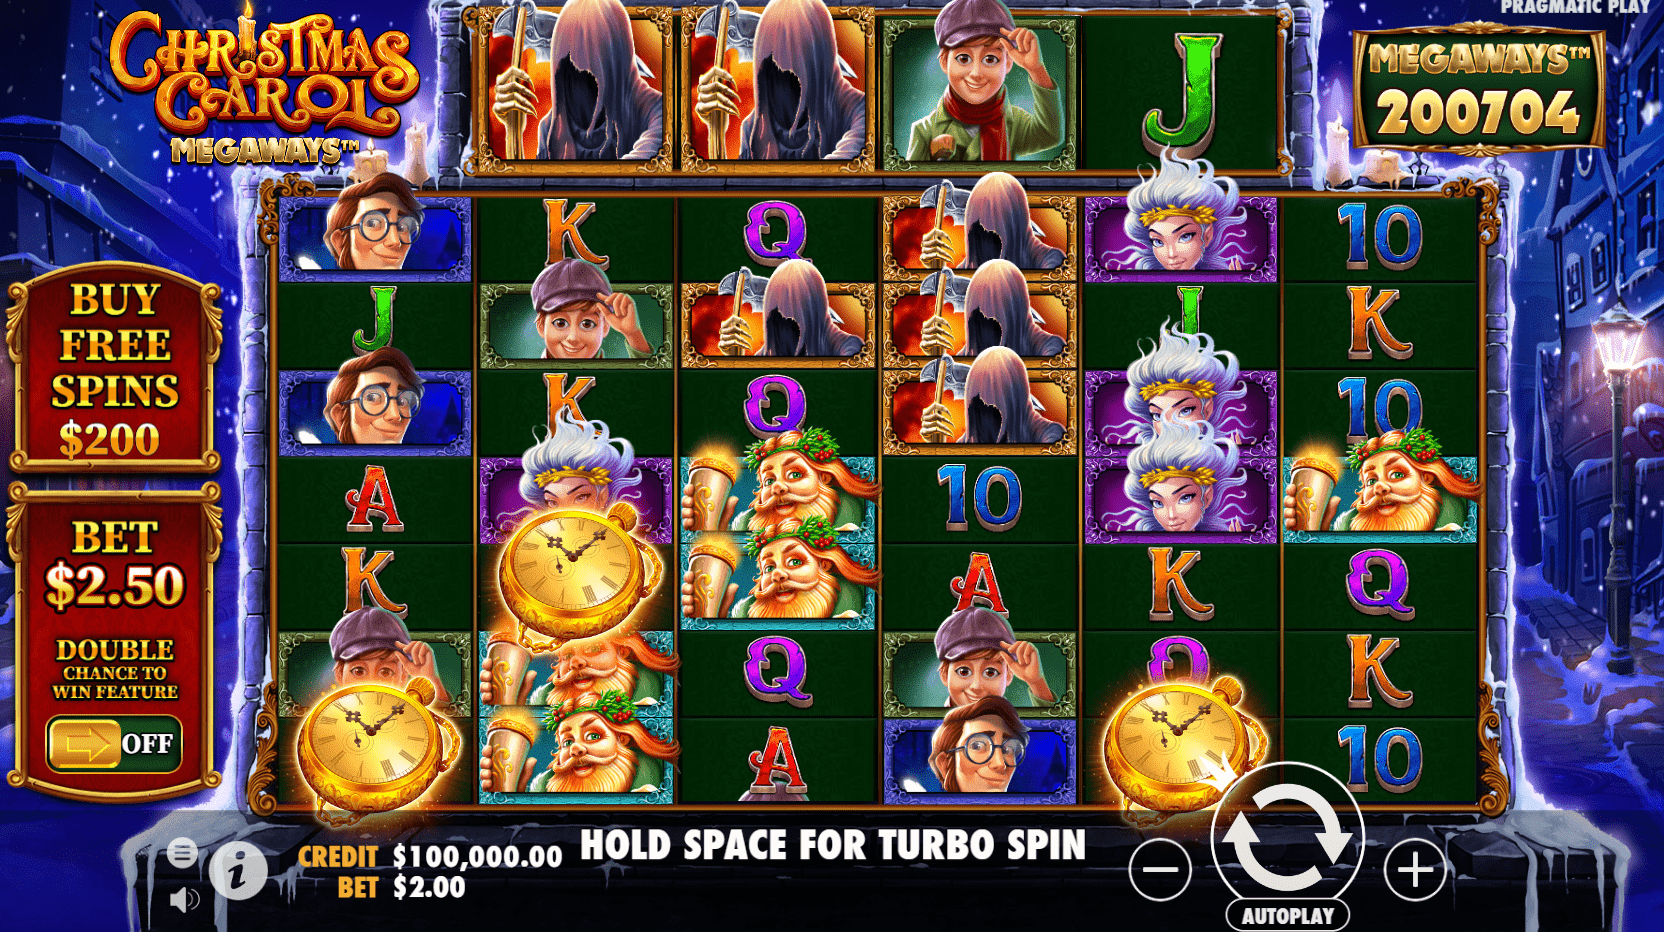 Christmas Carol Megaways video slot base game